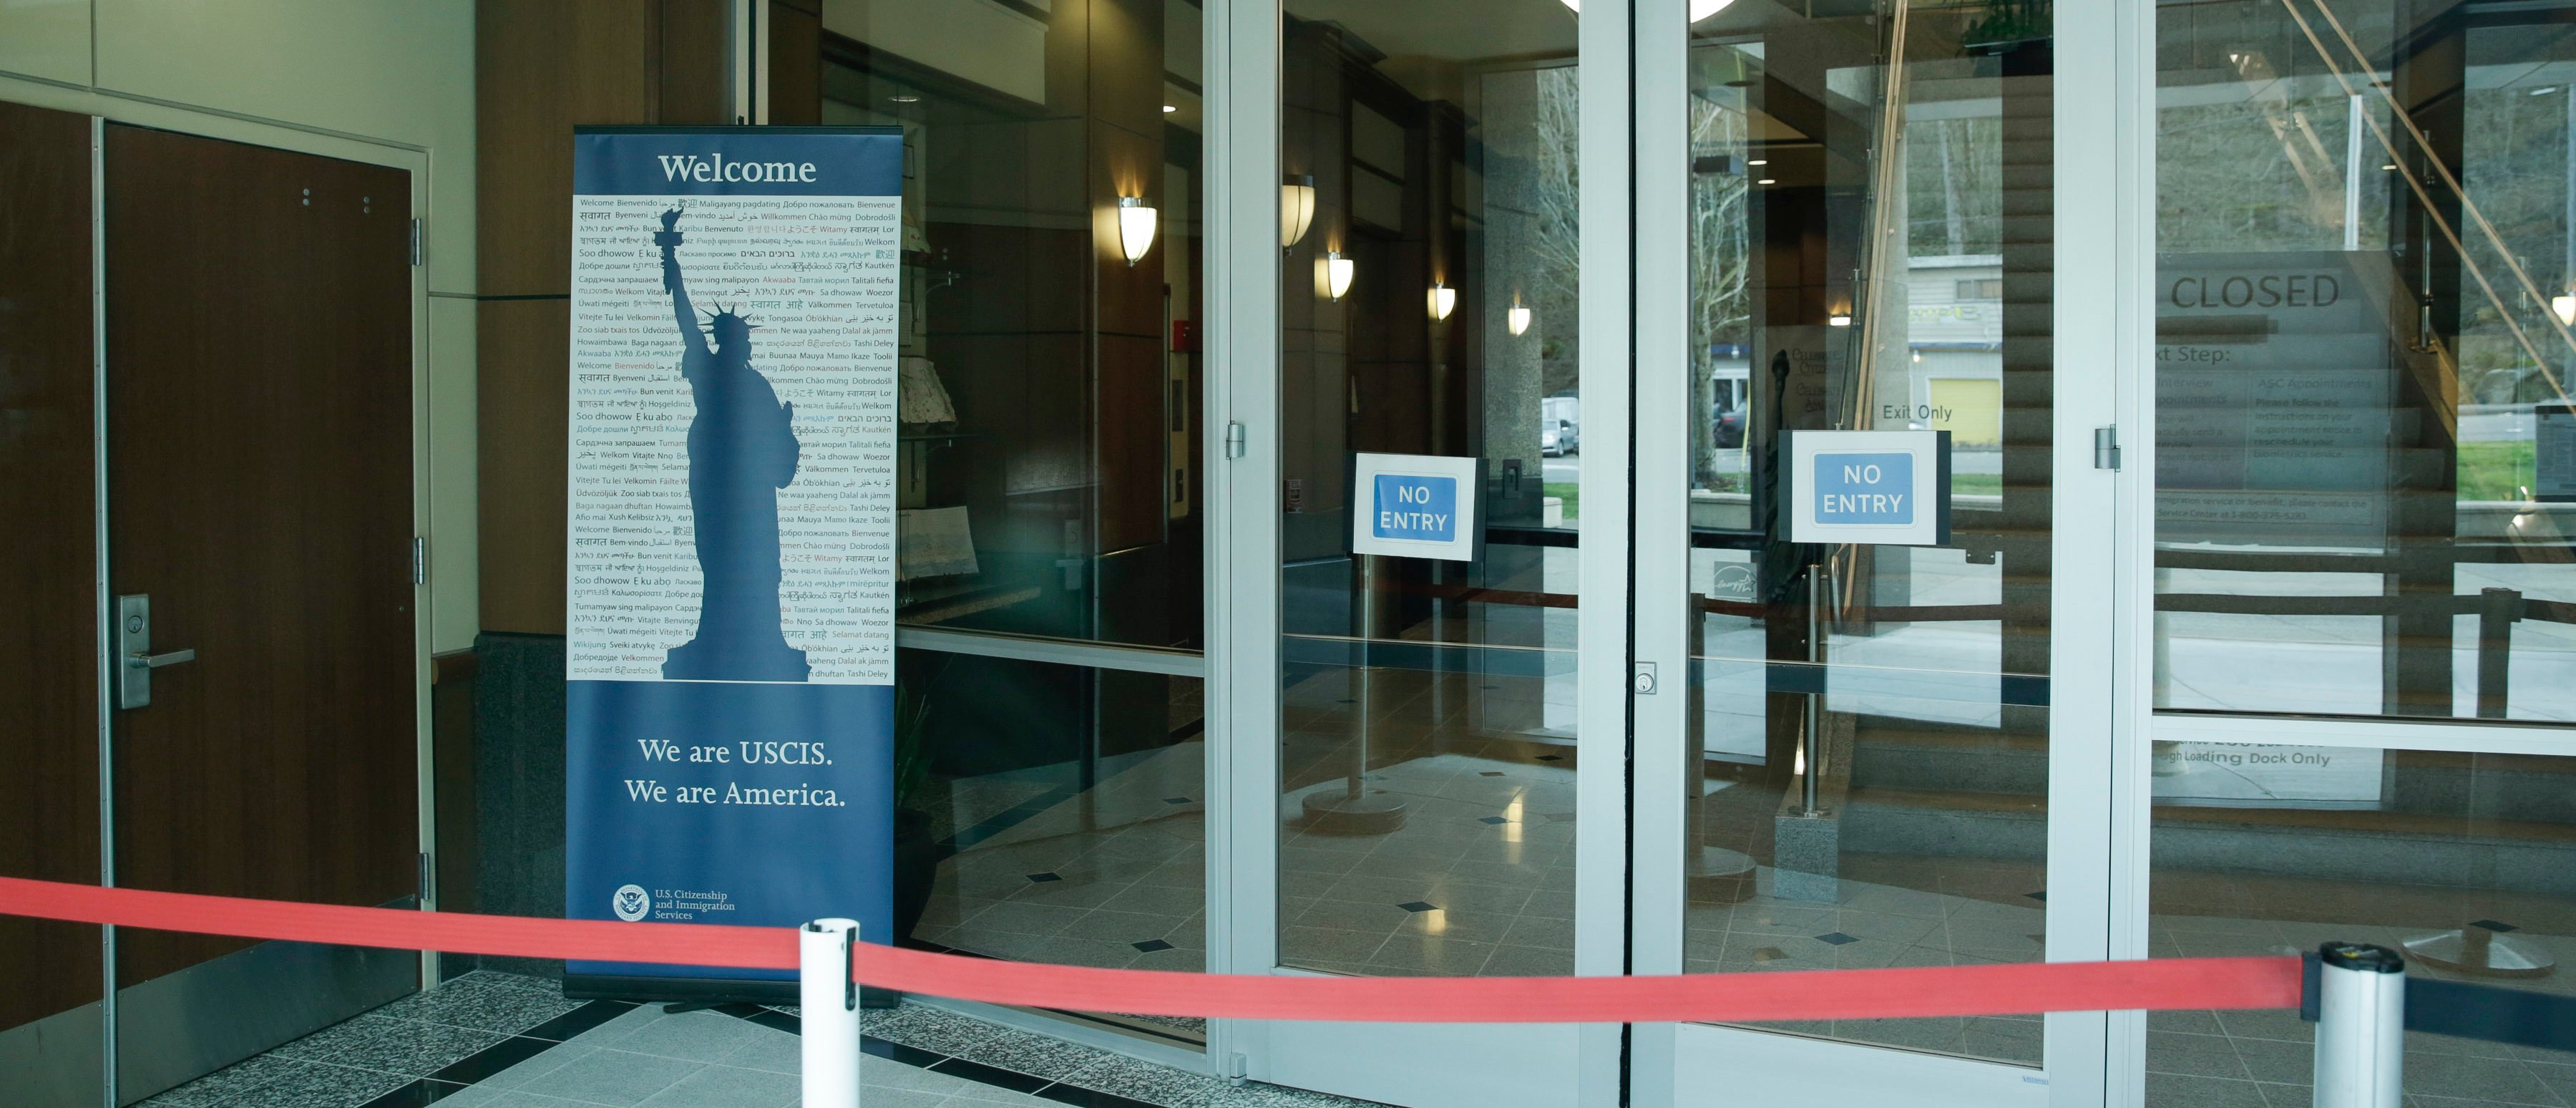 An empty entrance is posted following a two-week closure of a Department of Homeland Security (DHS) building and US Citizenship and Immigration Services (USCIS) field office because of an employee who may be infected with the novel coronavirus in Tukwila, Washington on March 3, 2020. - The US death toll from the new coronavirus epidemic rose to seven on March 3 after authorities confirmed that a nursing home patient who died last week was infected with the disease. All seven US deaths from COVID-19, as the virus is called, have been in Washington state. (Photo by Jason Redmond / AFP) (Photo by JASON REDMOND/AFP via Getty Images)